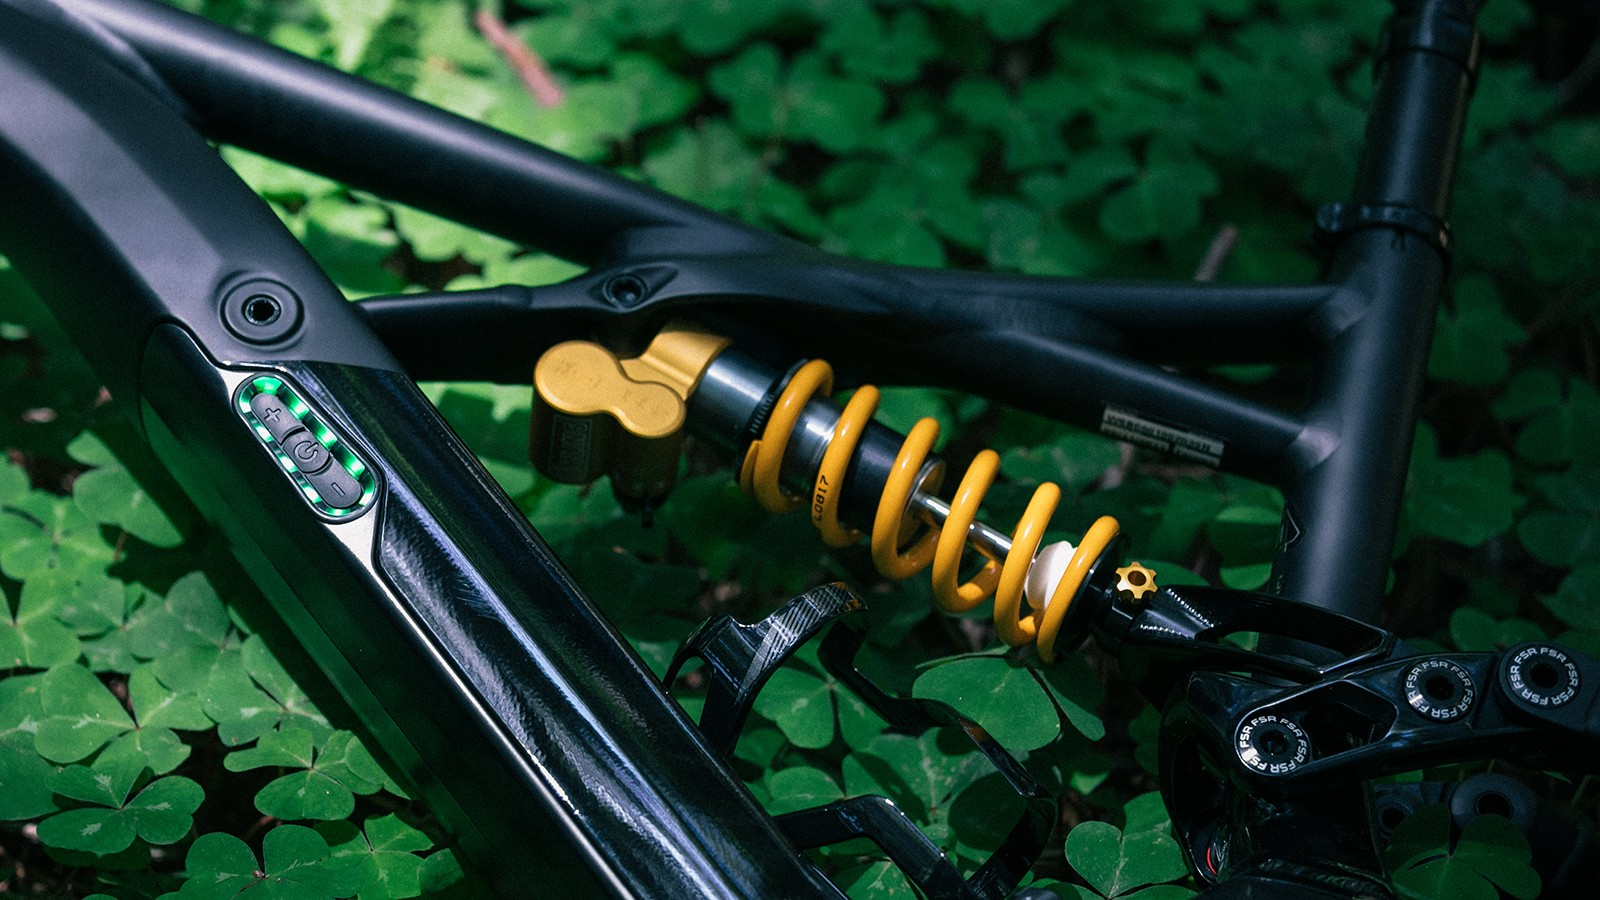 Öhlins's TTX coil damper is one of the finest in the business and delivers a smooth, incredibly controlled stroke